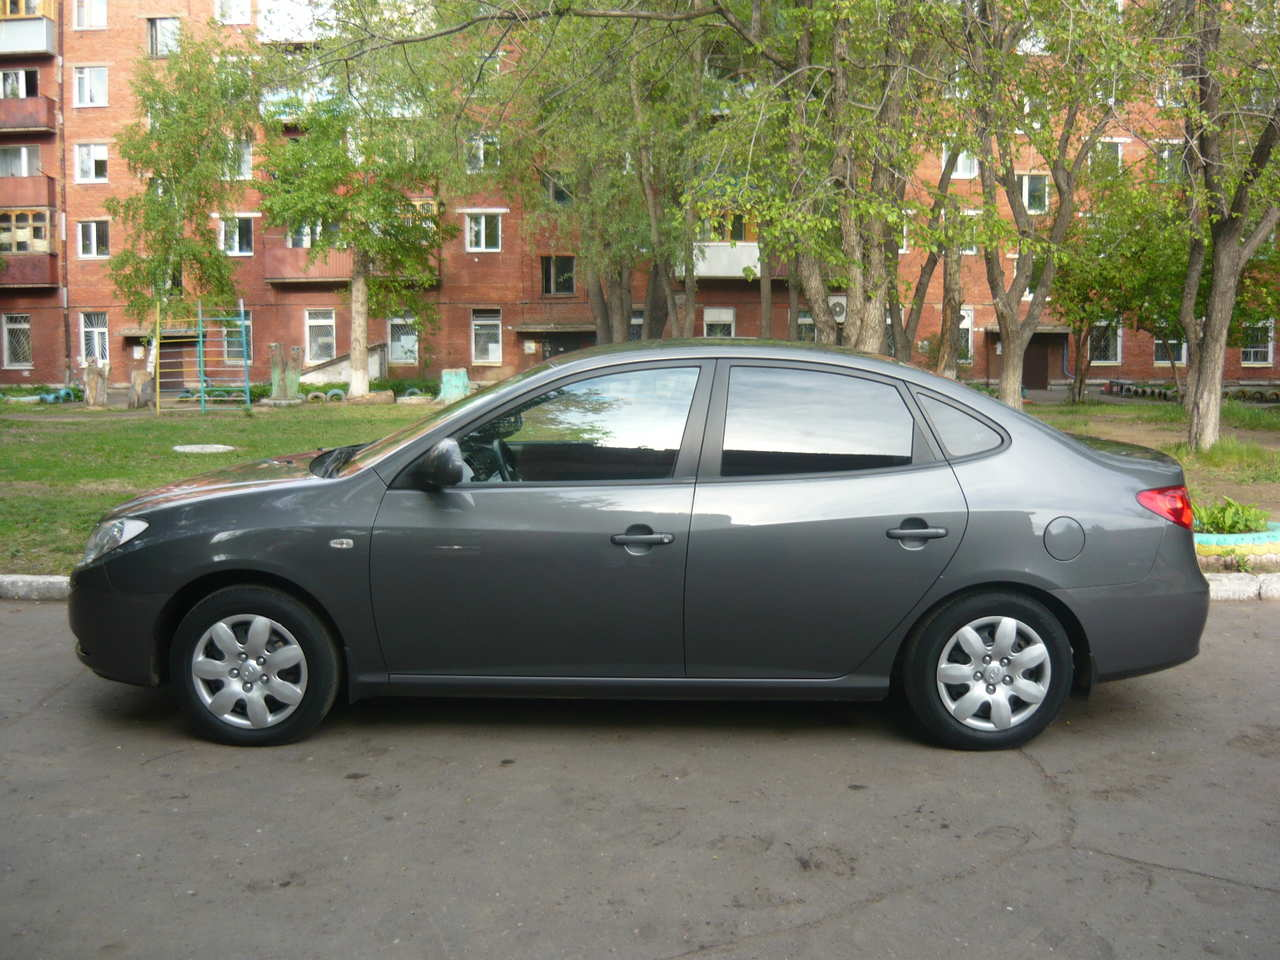 used 2008 hyundai elantra photos gasoline manual for sale. Black Bedroom Furniture Sets. Home Design Ideas